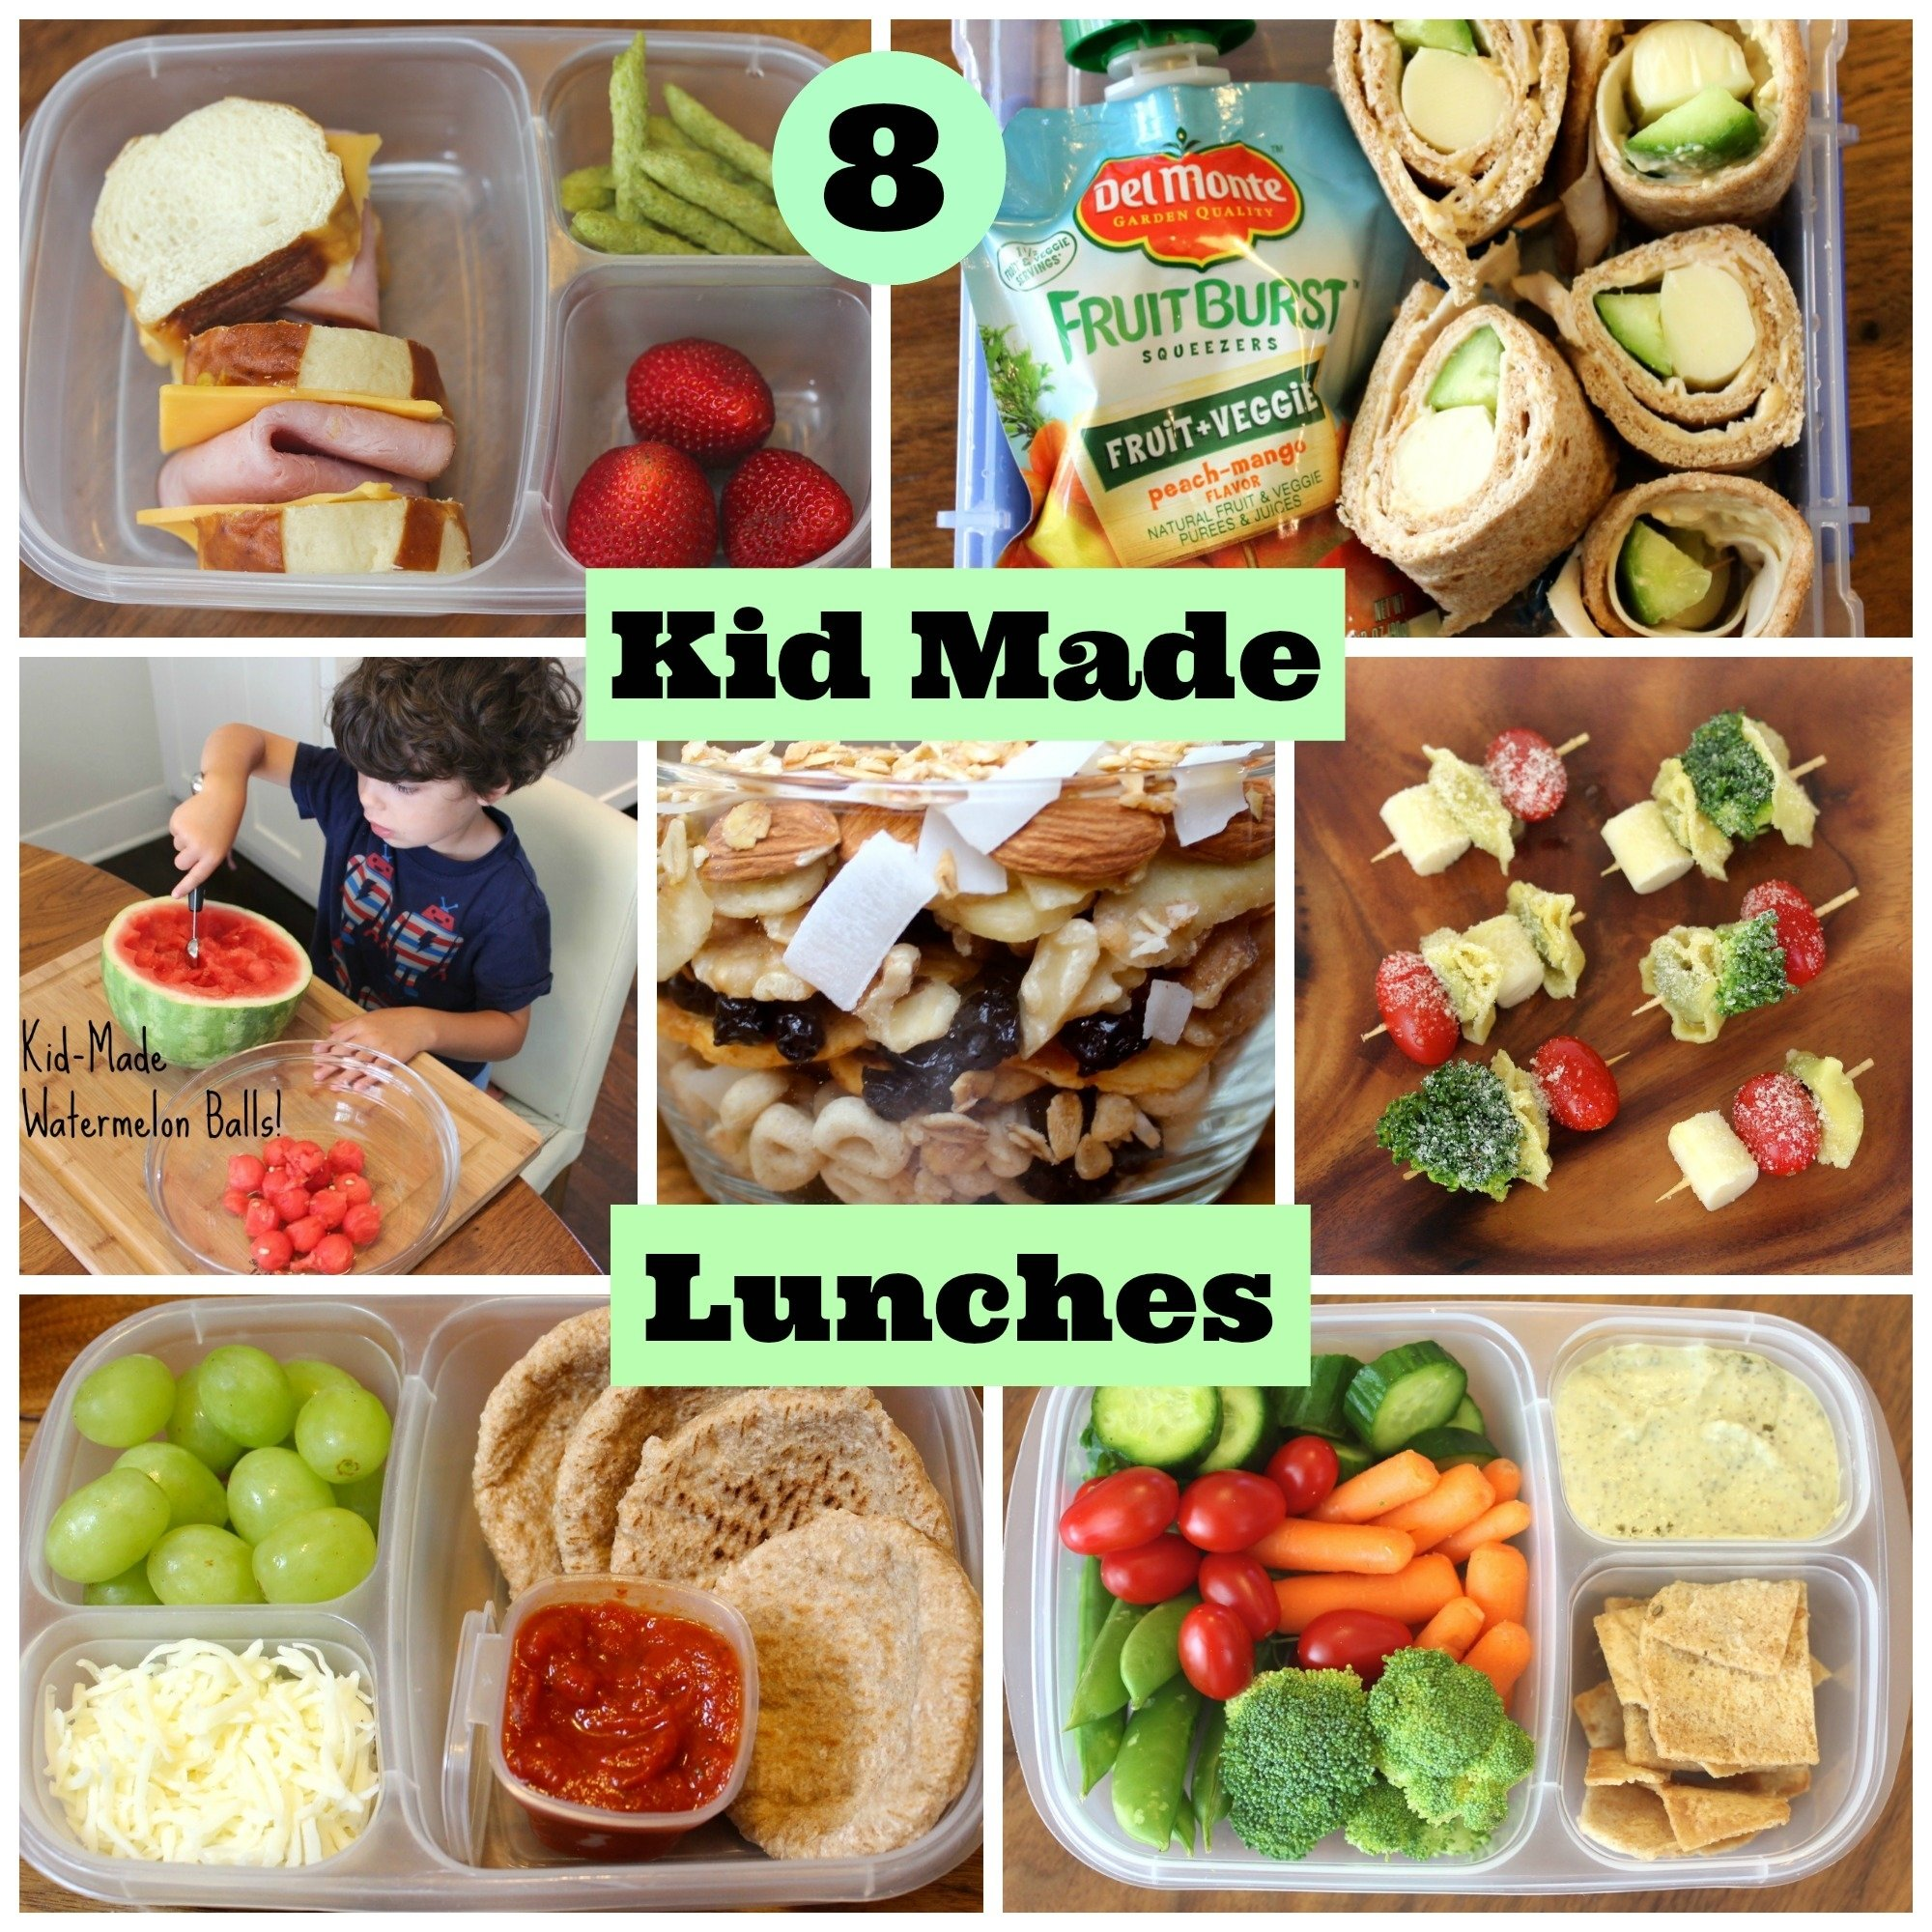 10 Amazing Snack Ideas For Kids School 4 healthy school lunches your kids can make themselves babble 17 2020